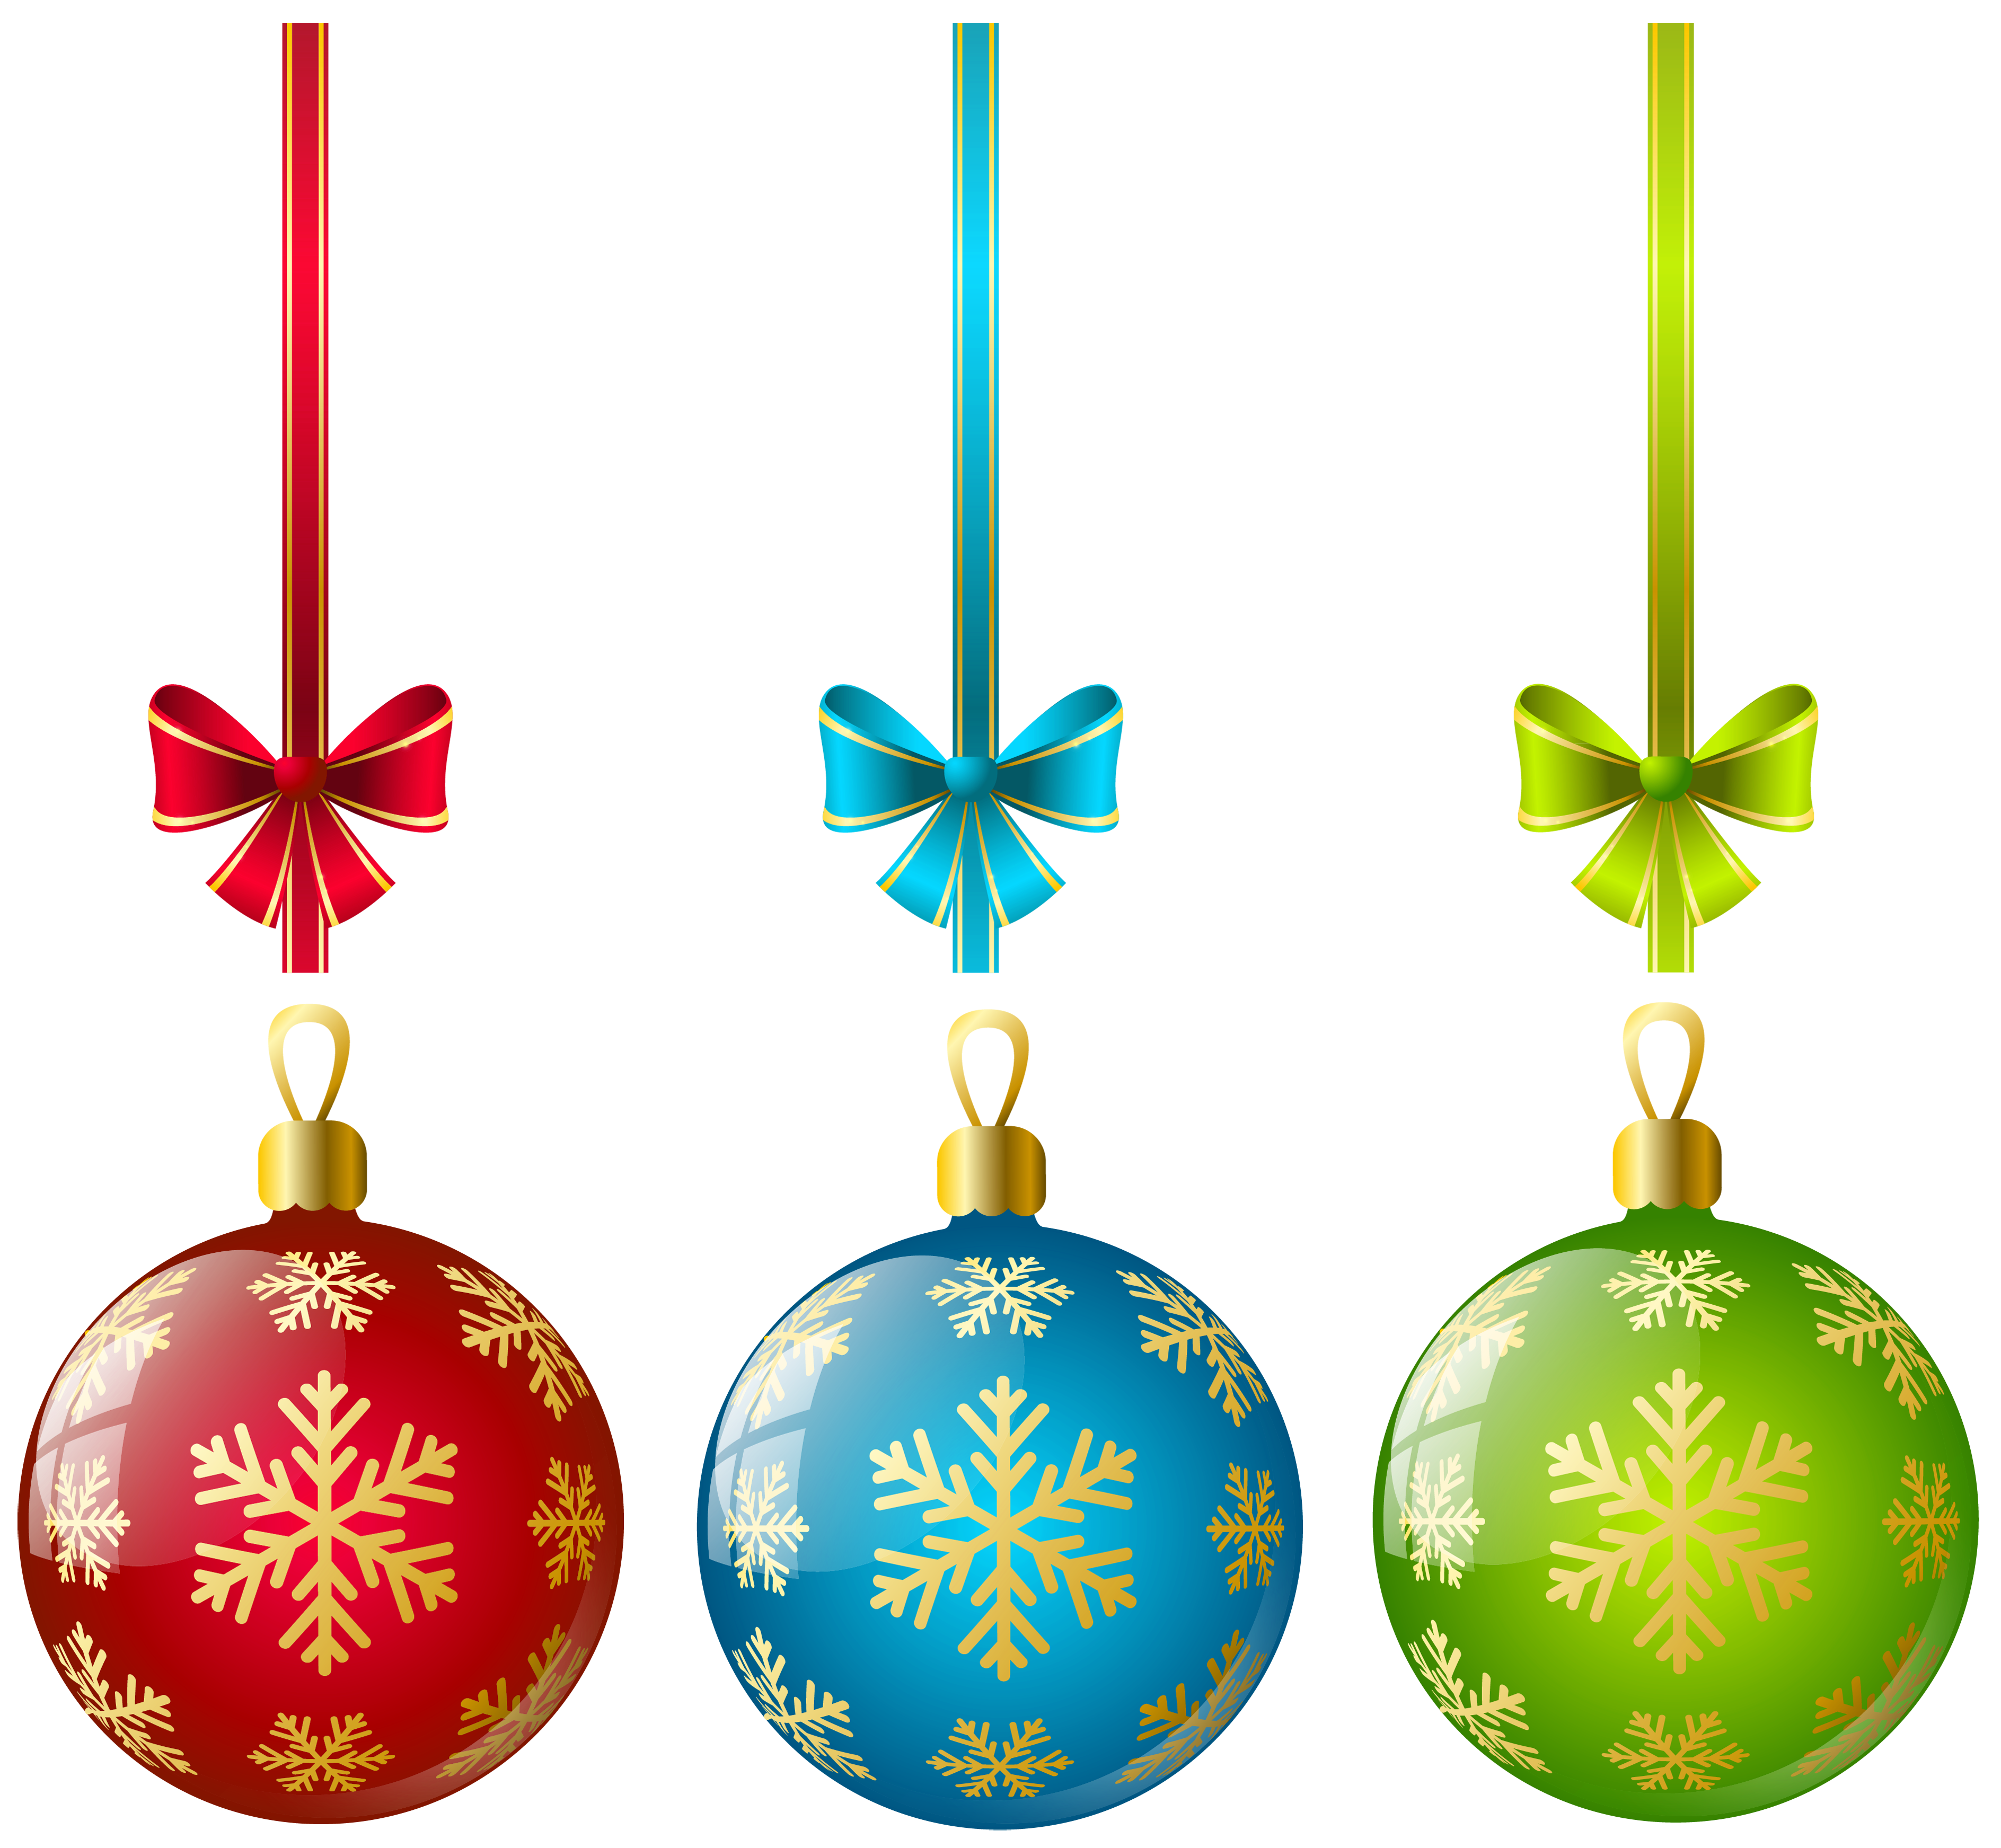 Christmas bulb ornaments clipart.